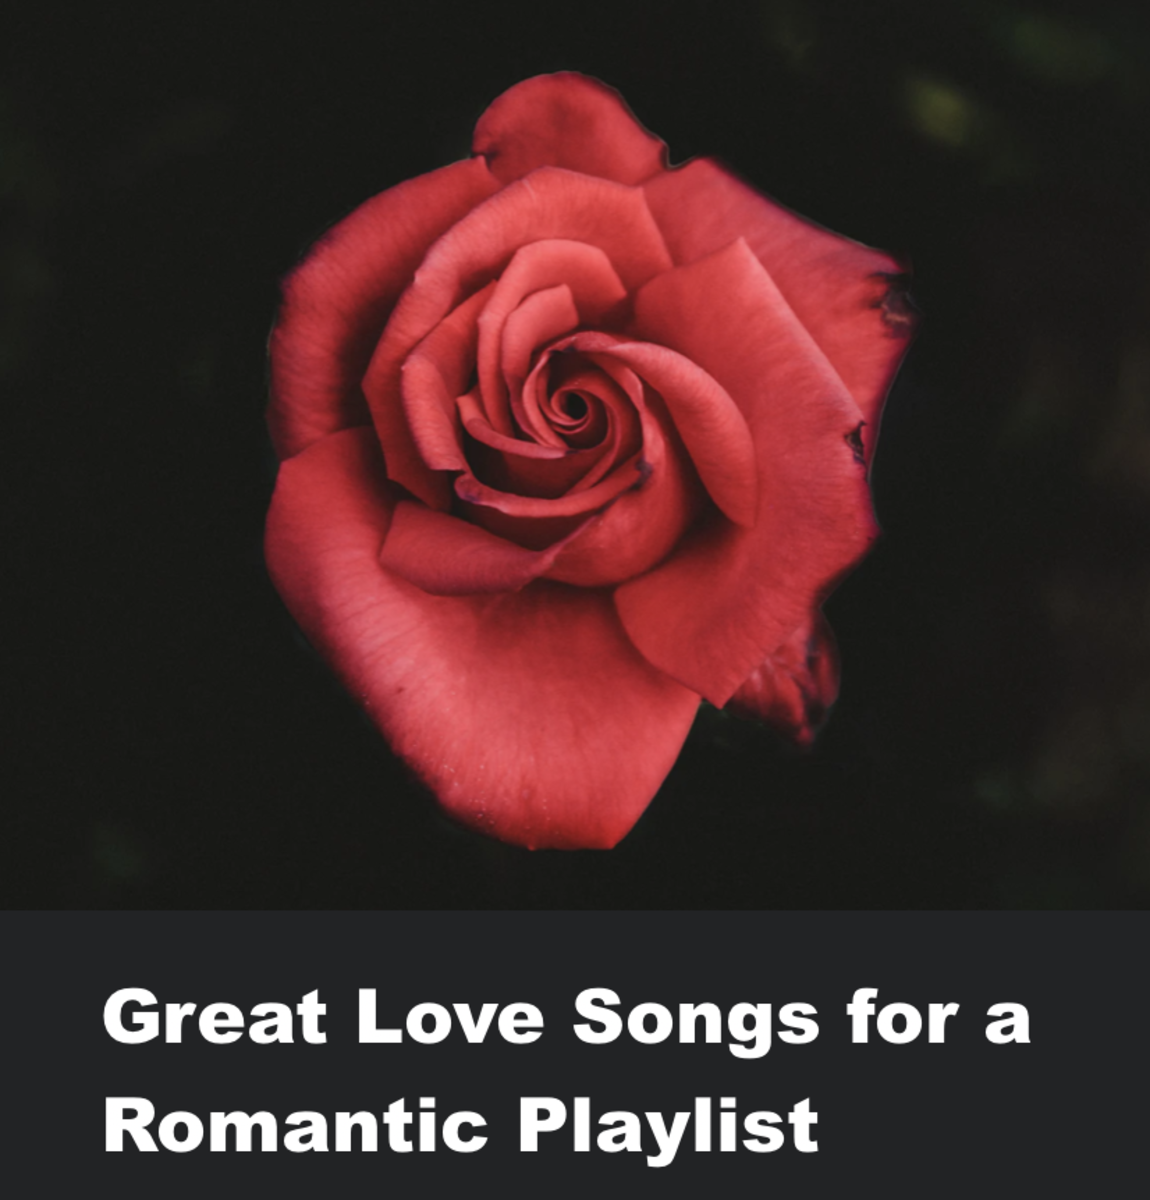 These great songs will get you in the mood for love.